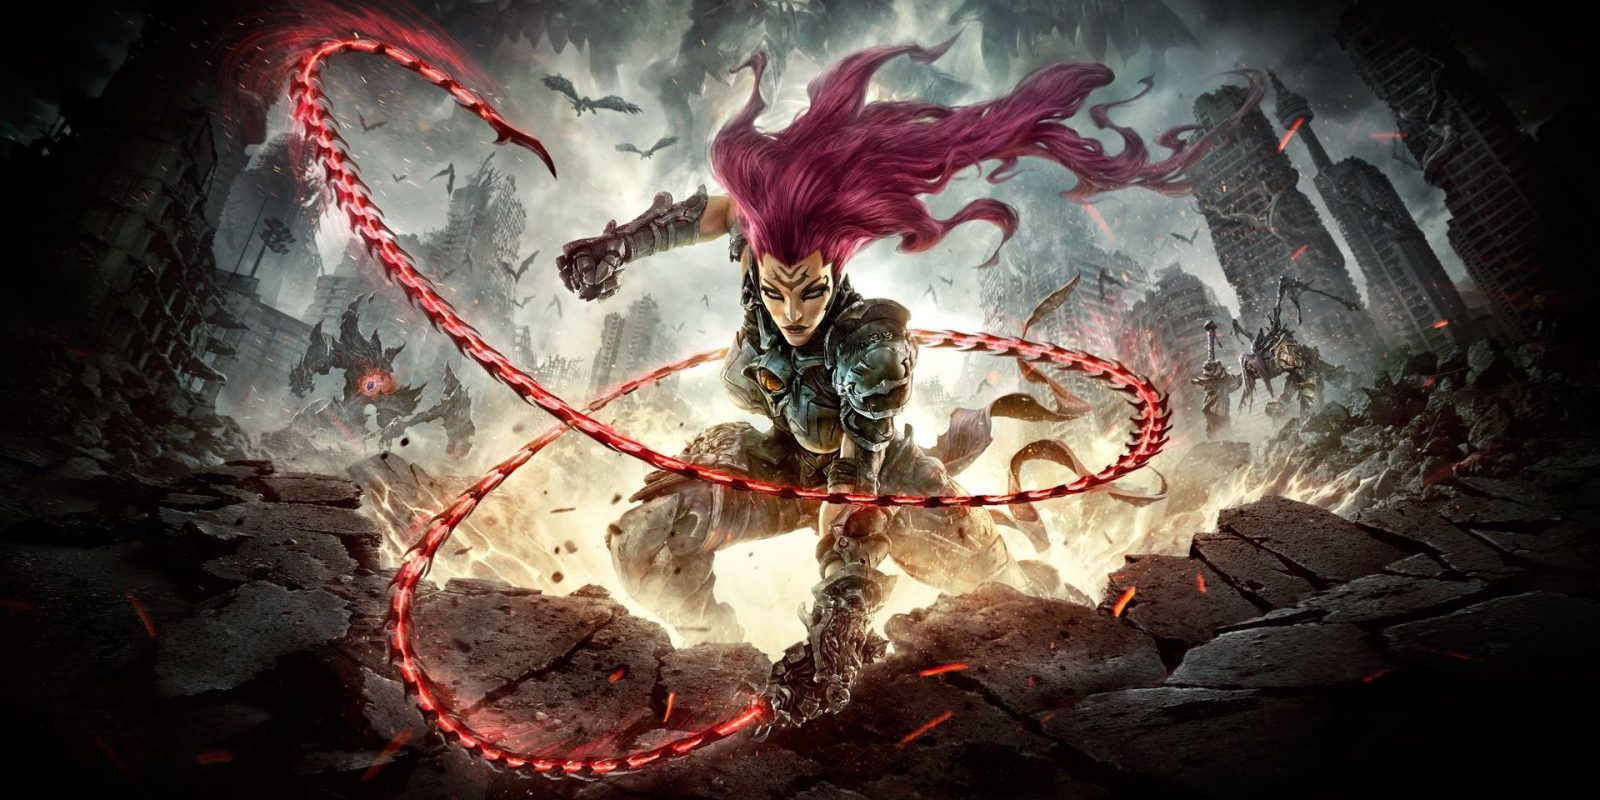 Today's Best Game Deals: Darksiders III $20, Sekiro from $36, more